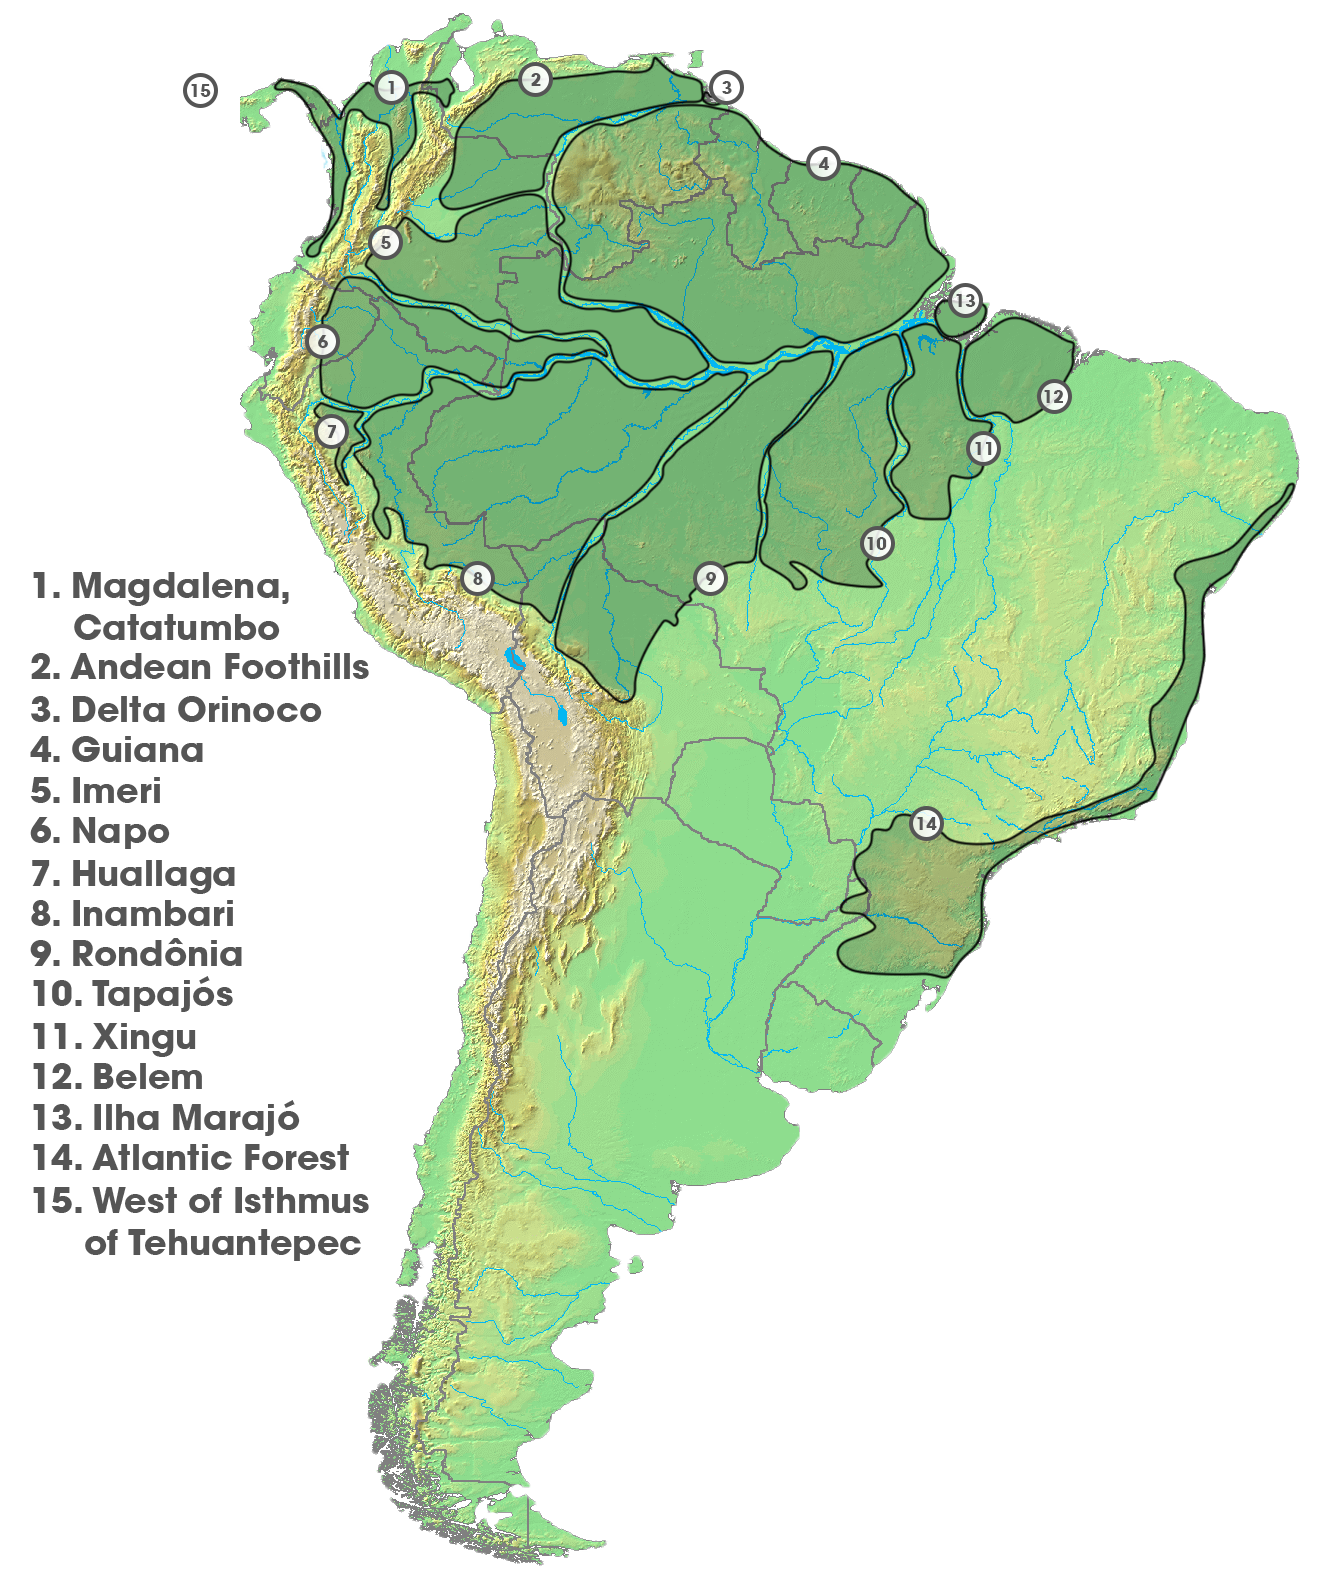 South america map png. File areas of endemism